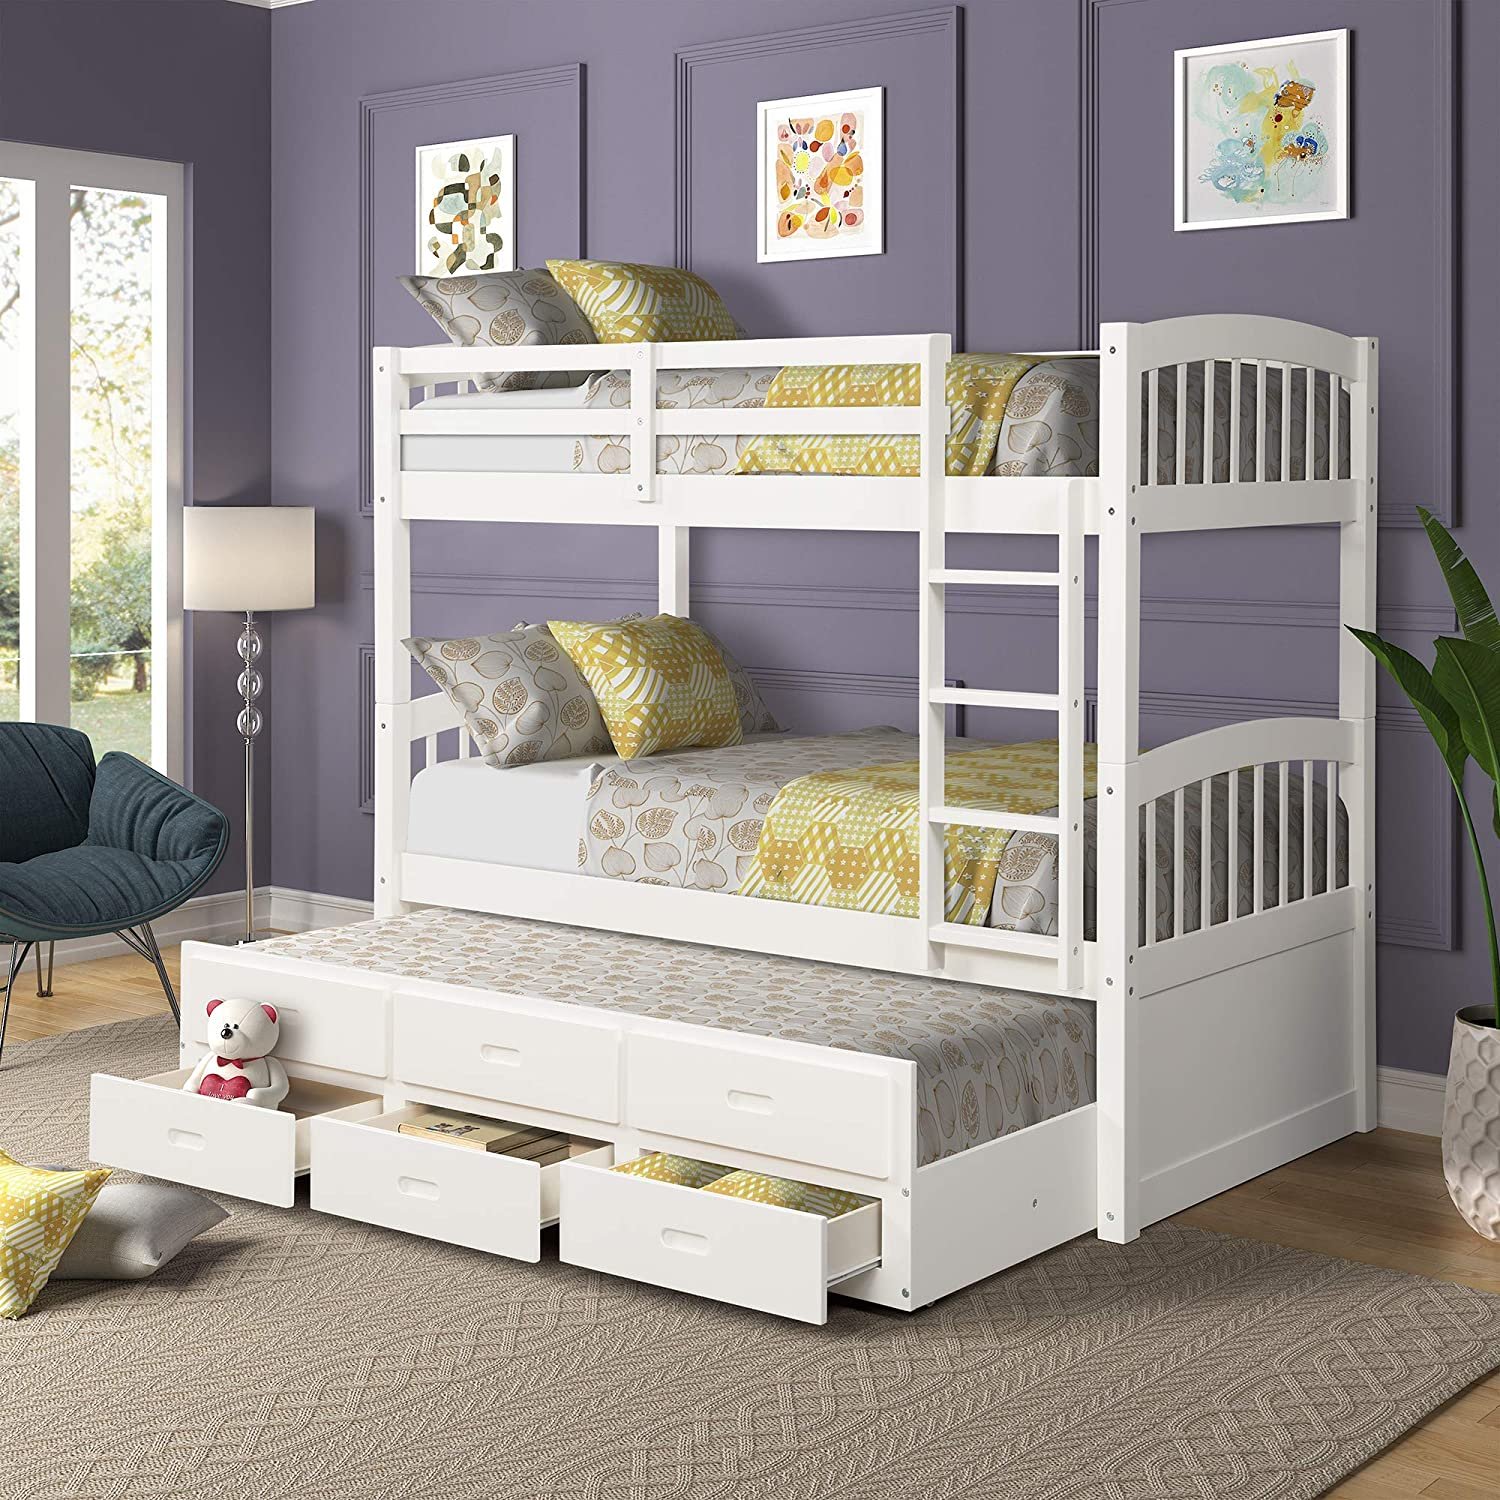 Solid Wood Bunk Kids Teens Adult, Twin Bed,with Ladder, Safety Rail,Trundle,and 3 Storage Drawers Can be Divided into 2, White